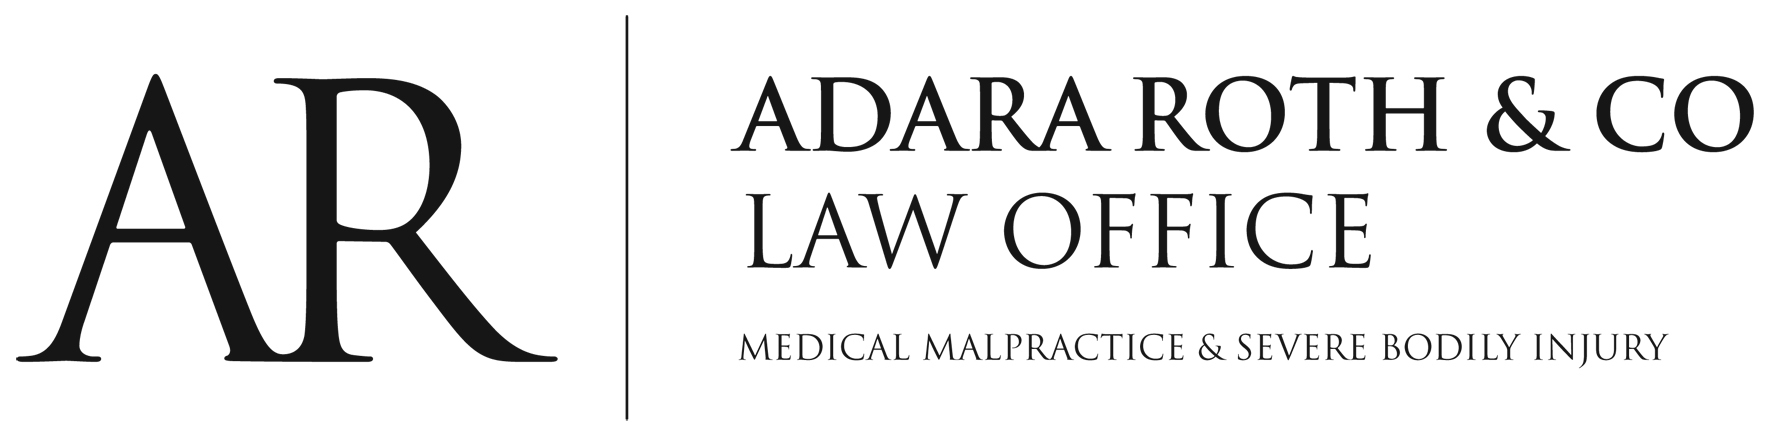 Adara Roth & Co Law Office